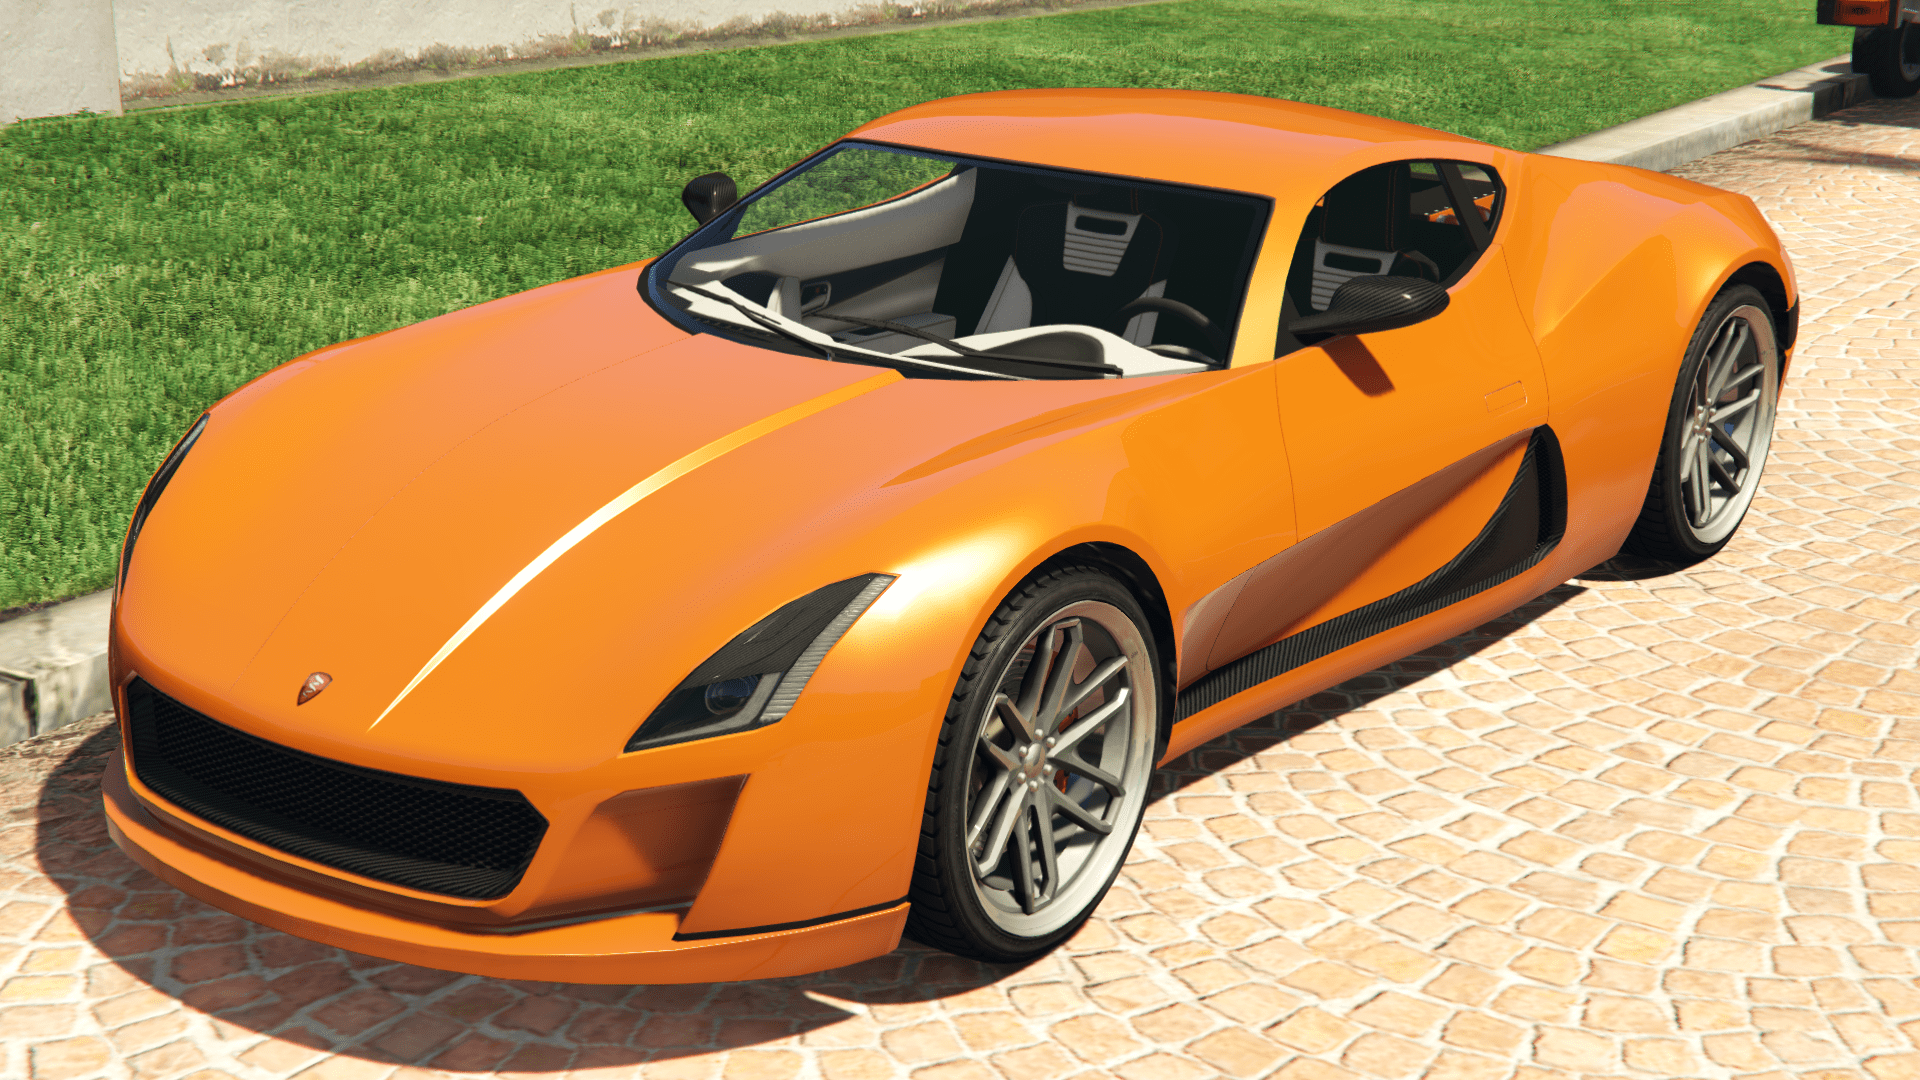 Gta Online Gets An All Electric Supercar In This Latest Update Gta Cars Gta Gta Online